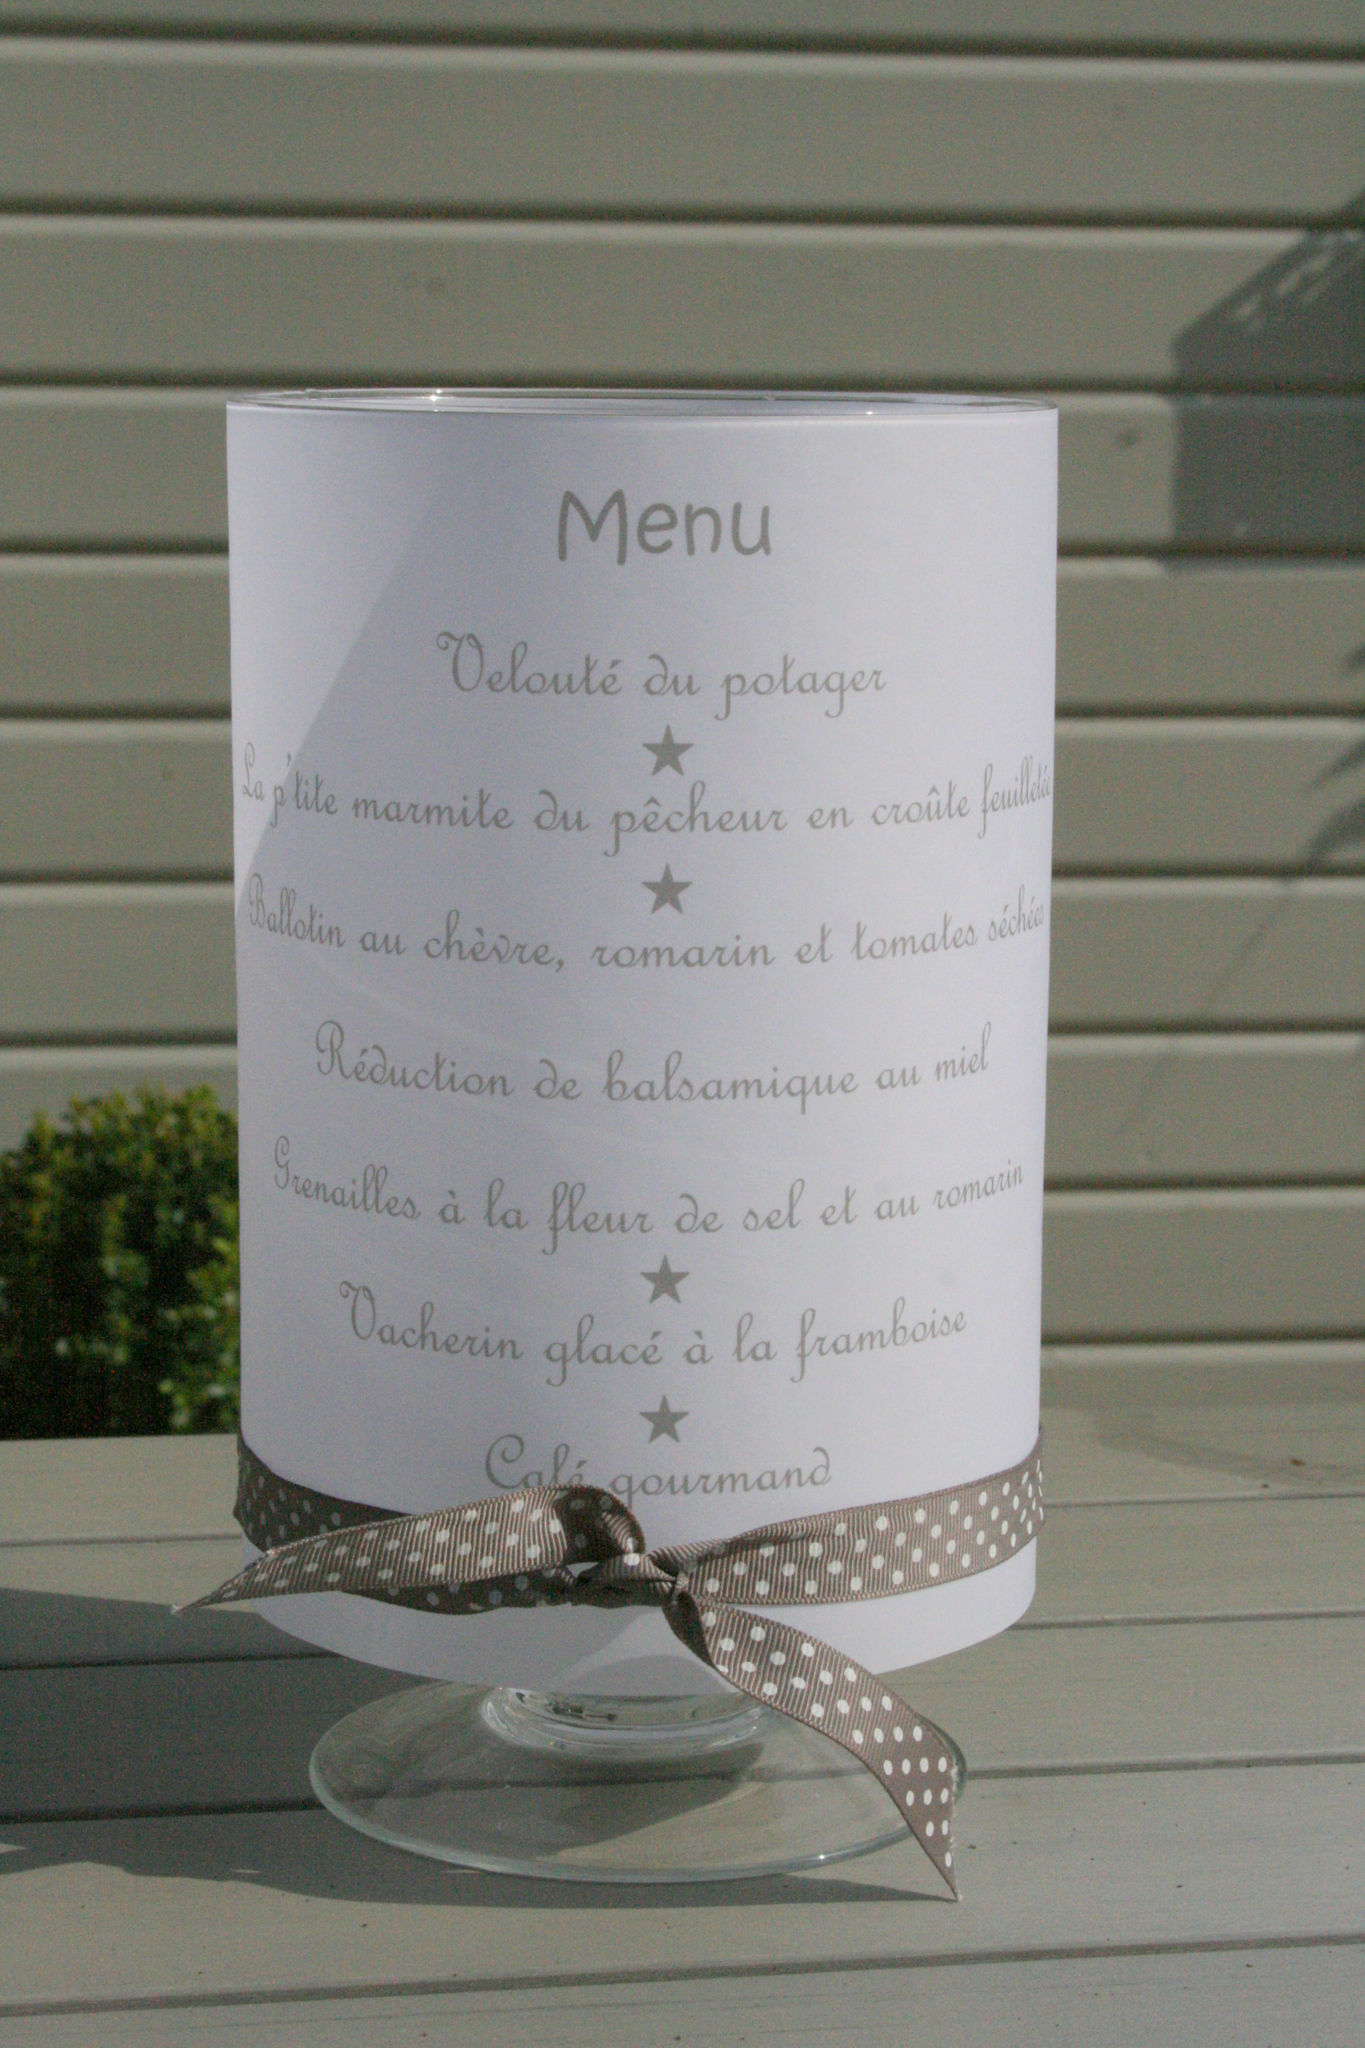 Ensemble Table Et Chaise Jardin Présentation De Menu - J'ai Un Secret à Te Dire...